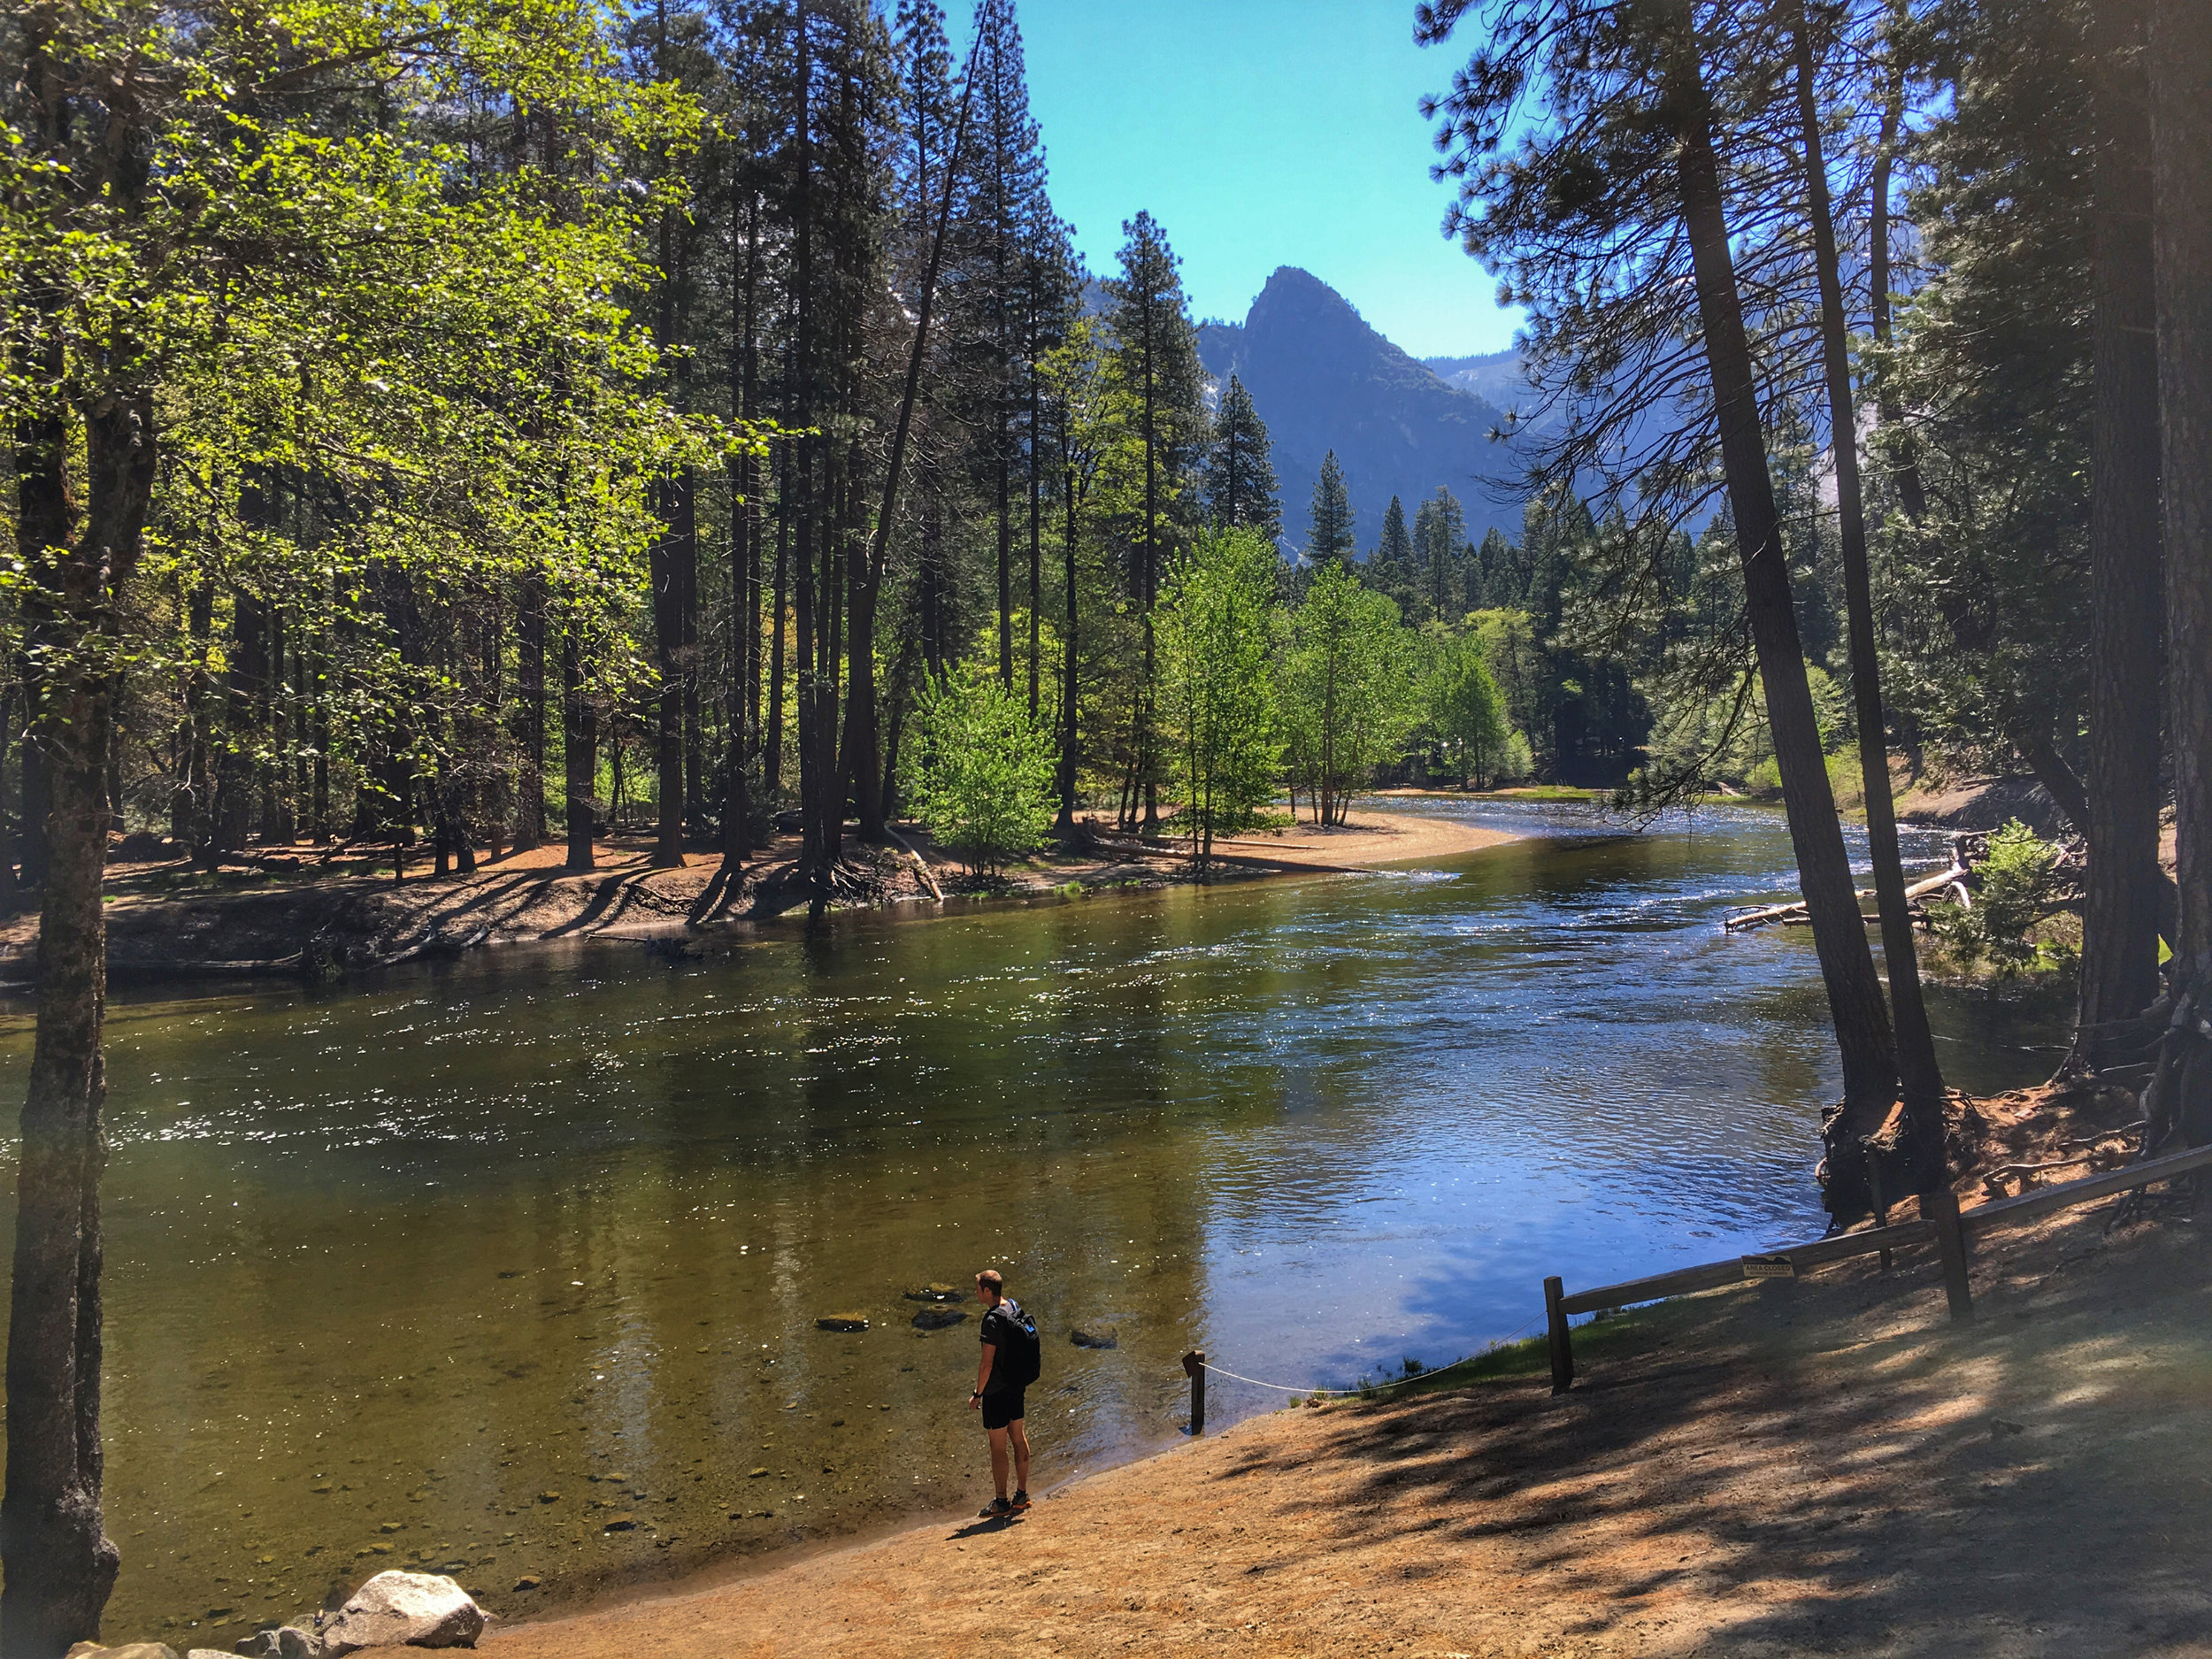 Views of the Merced River